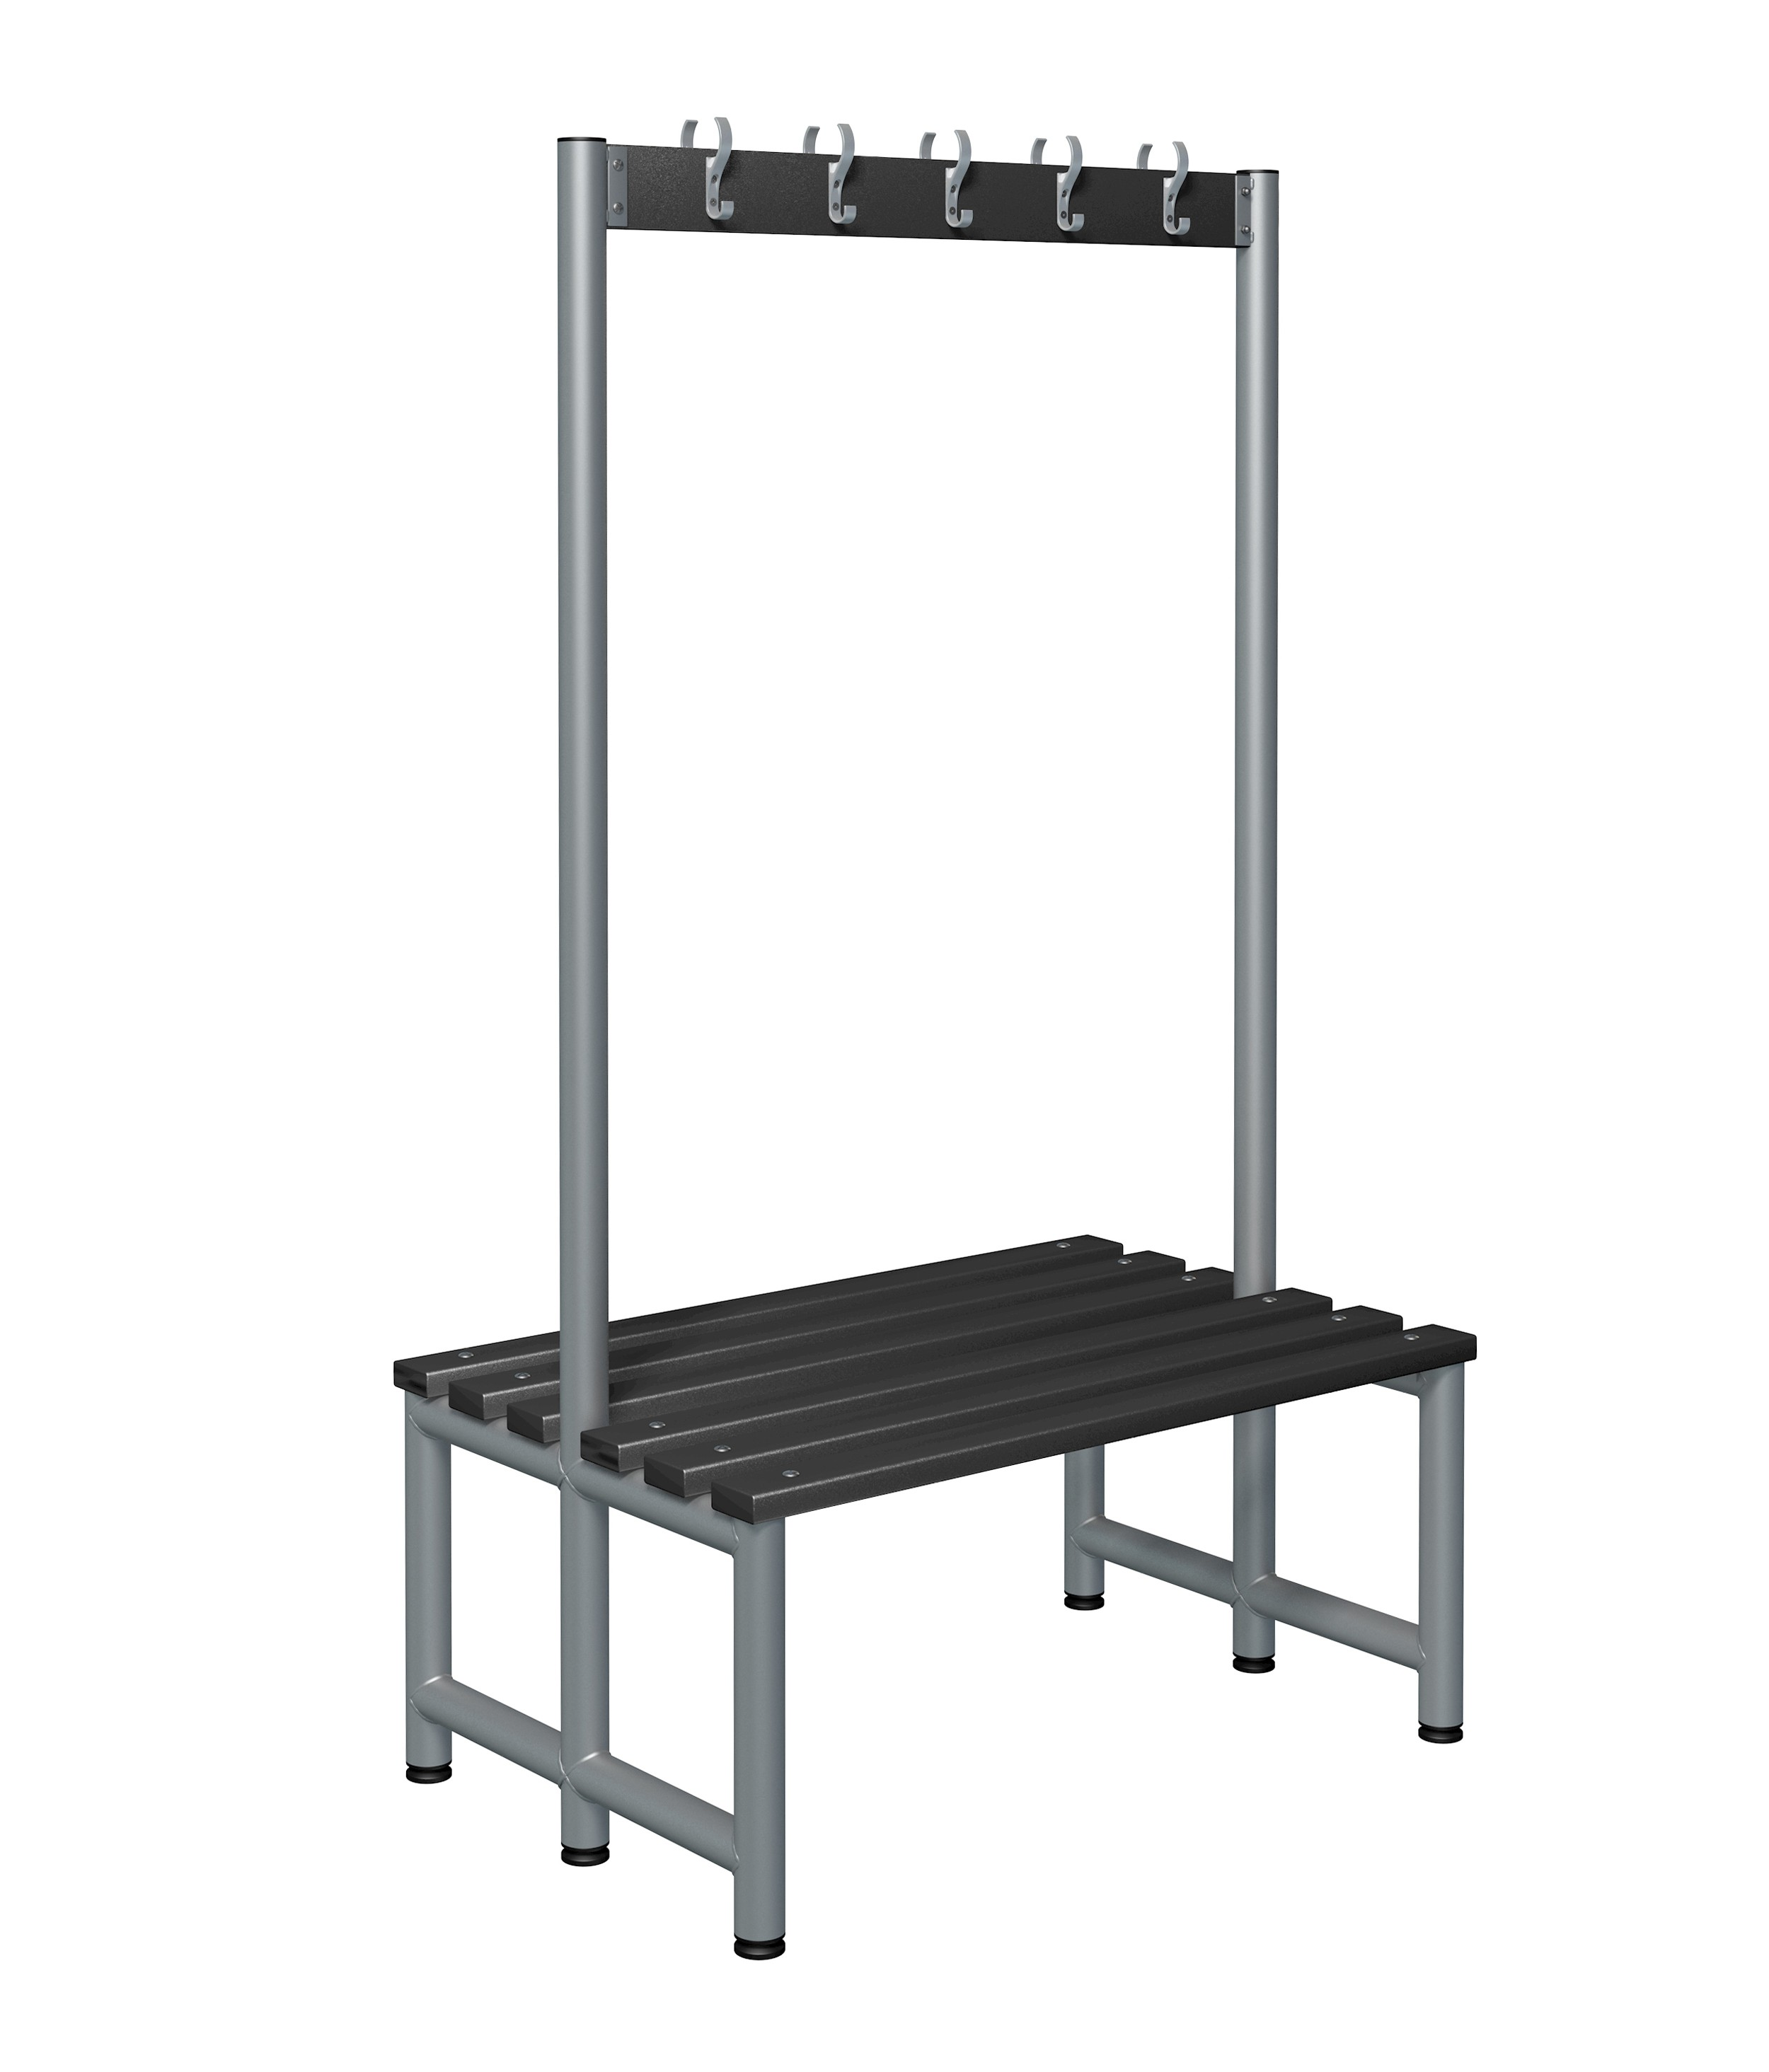 Double Sided Hook Bench Type D -  Senior